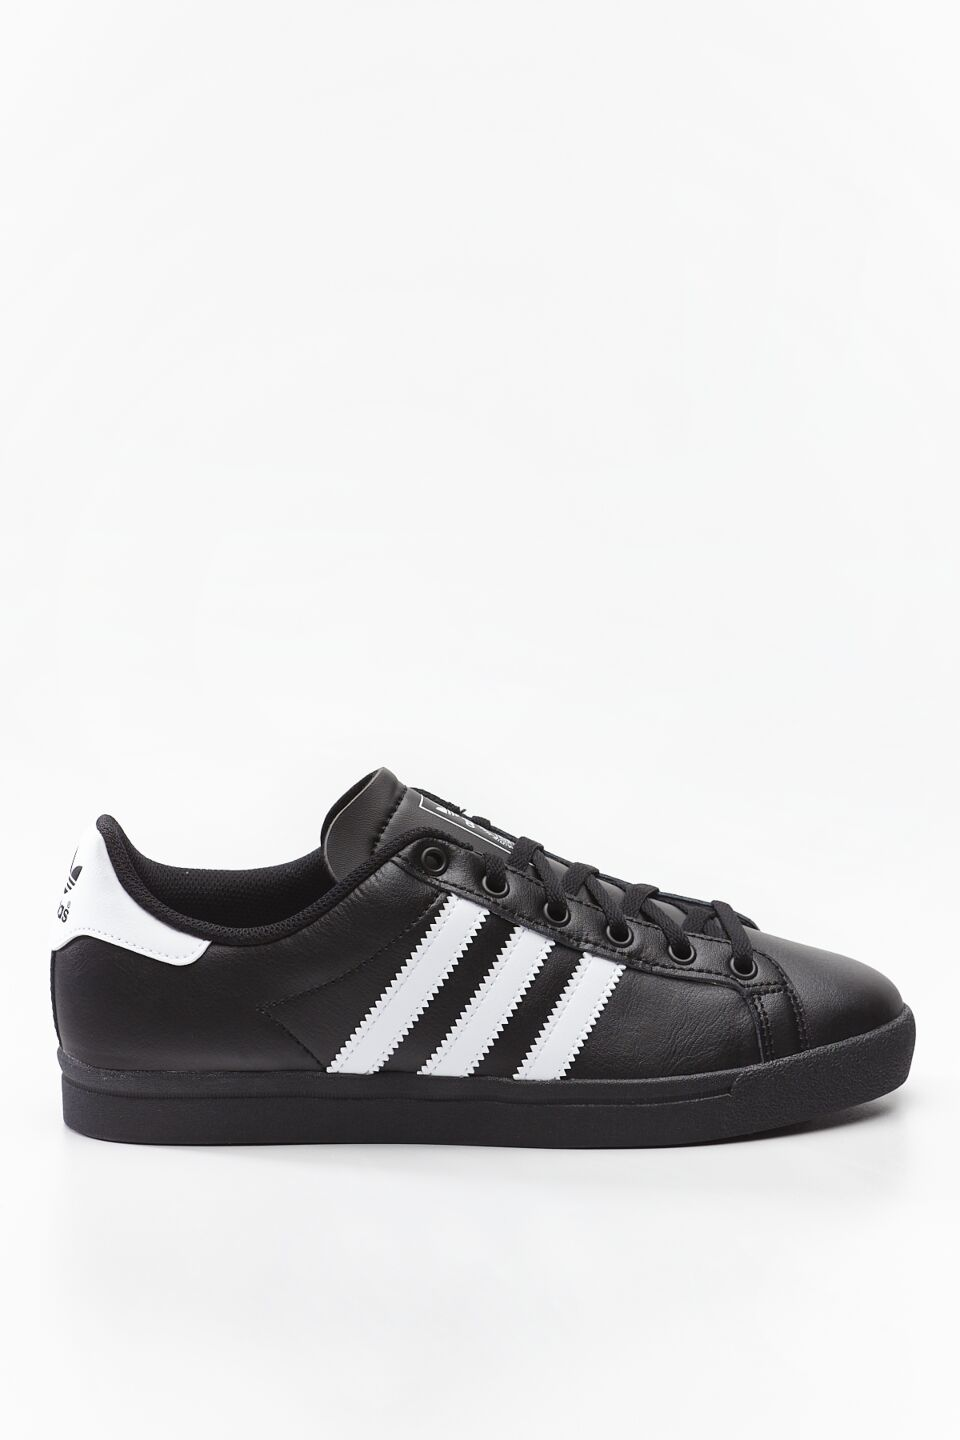 COAST STAR J 699 CORE BLACK/FOOTWEAR WHITE/CORE BLACK